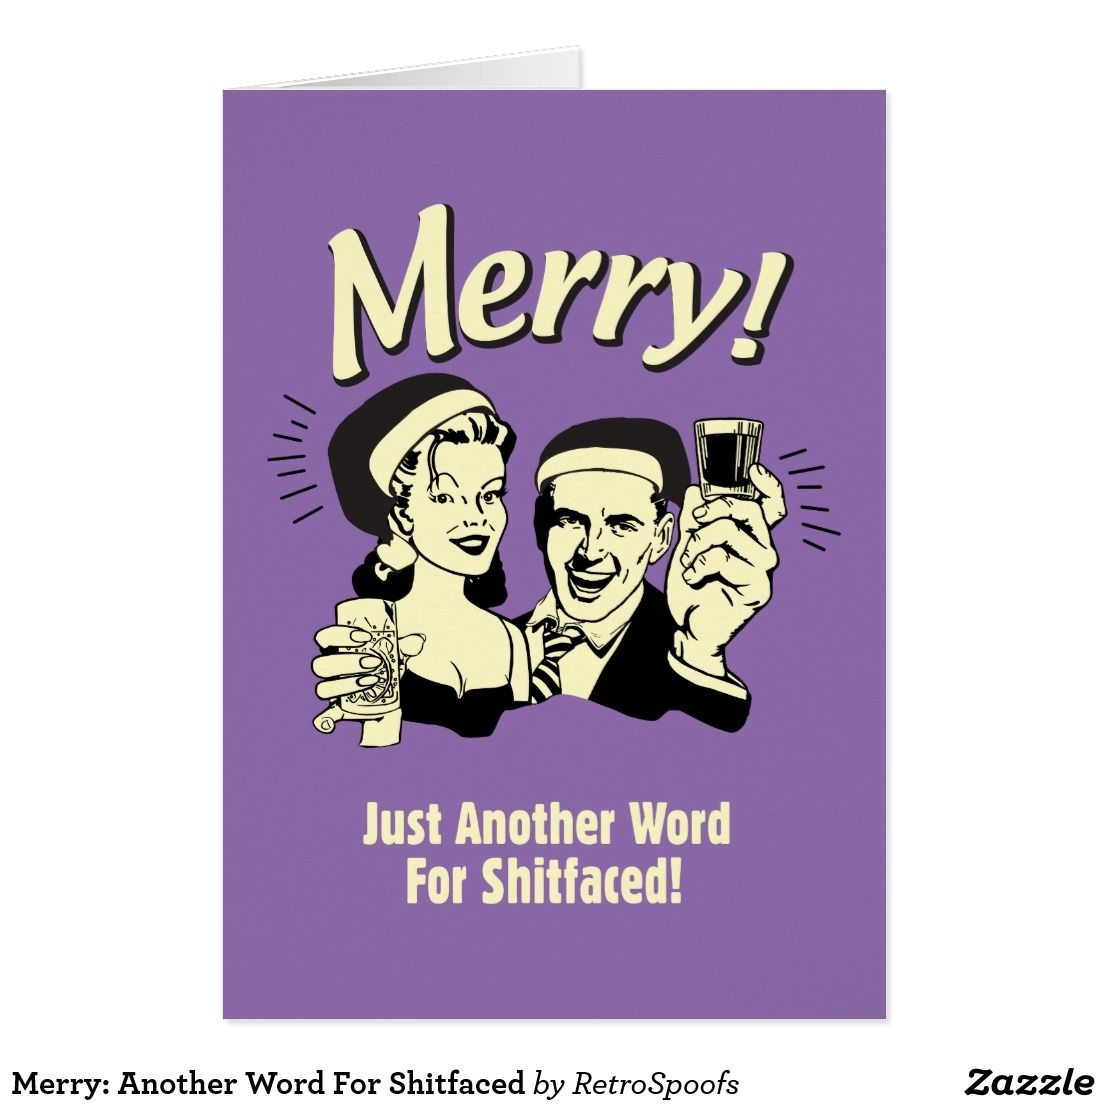 Merry another word for shitfaced pinterest merry merry another word for shitfaced card m4hsunfo